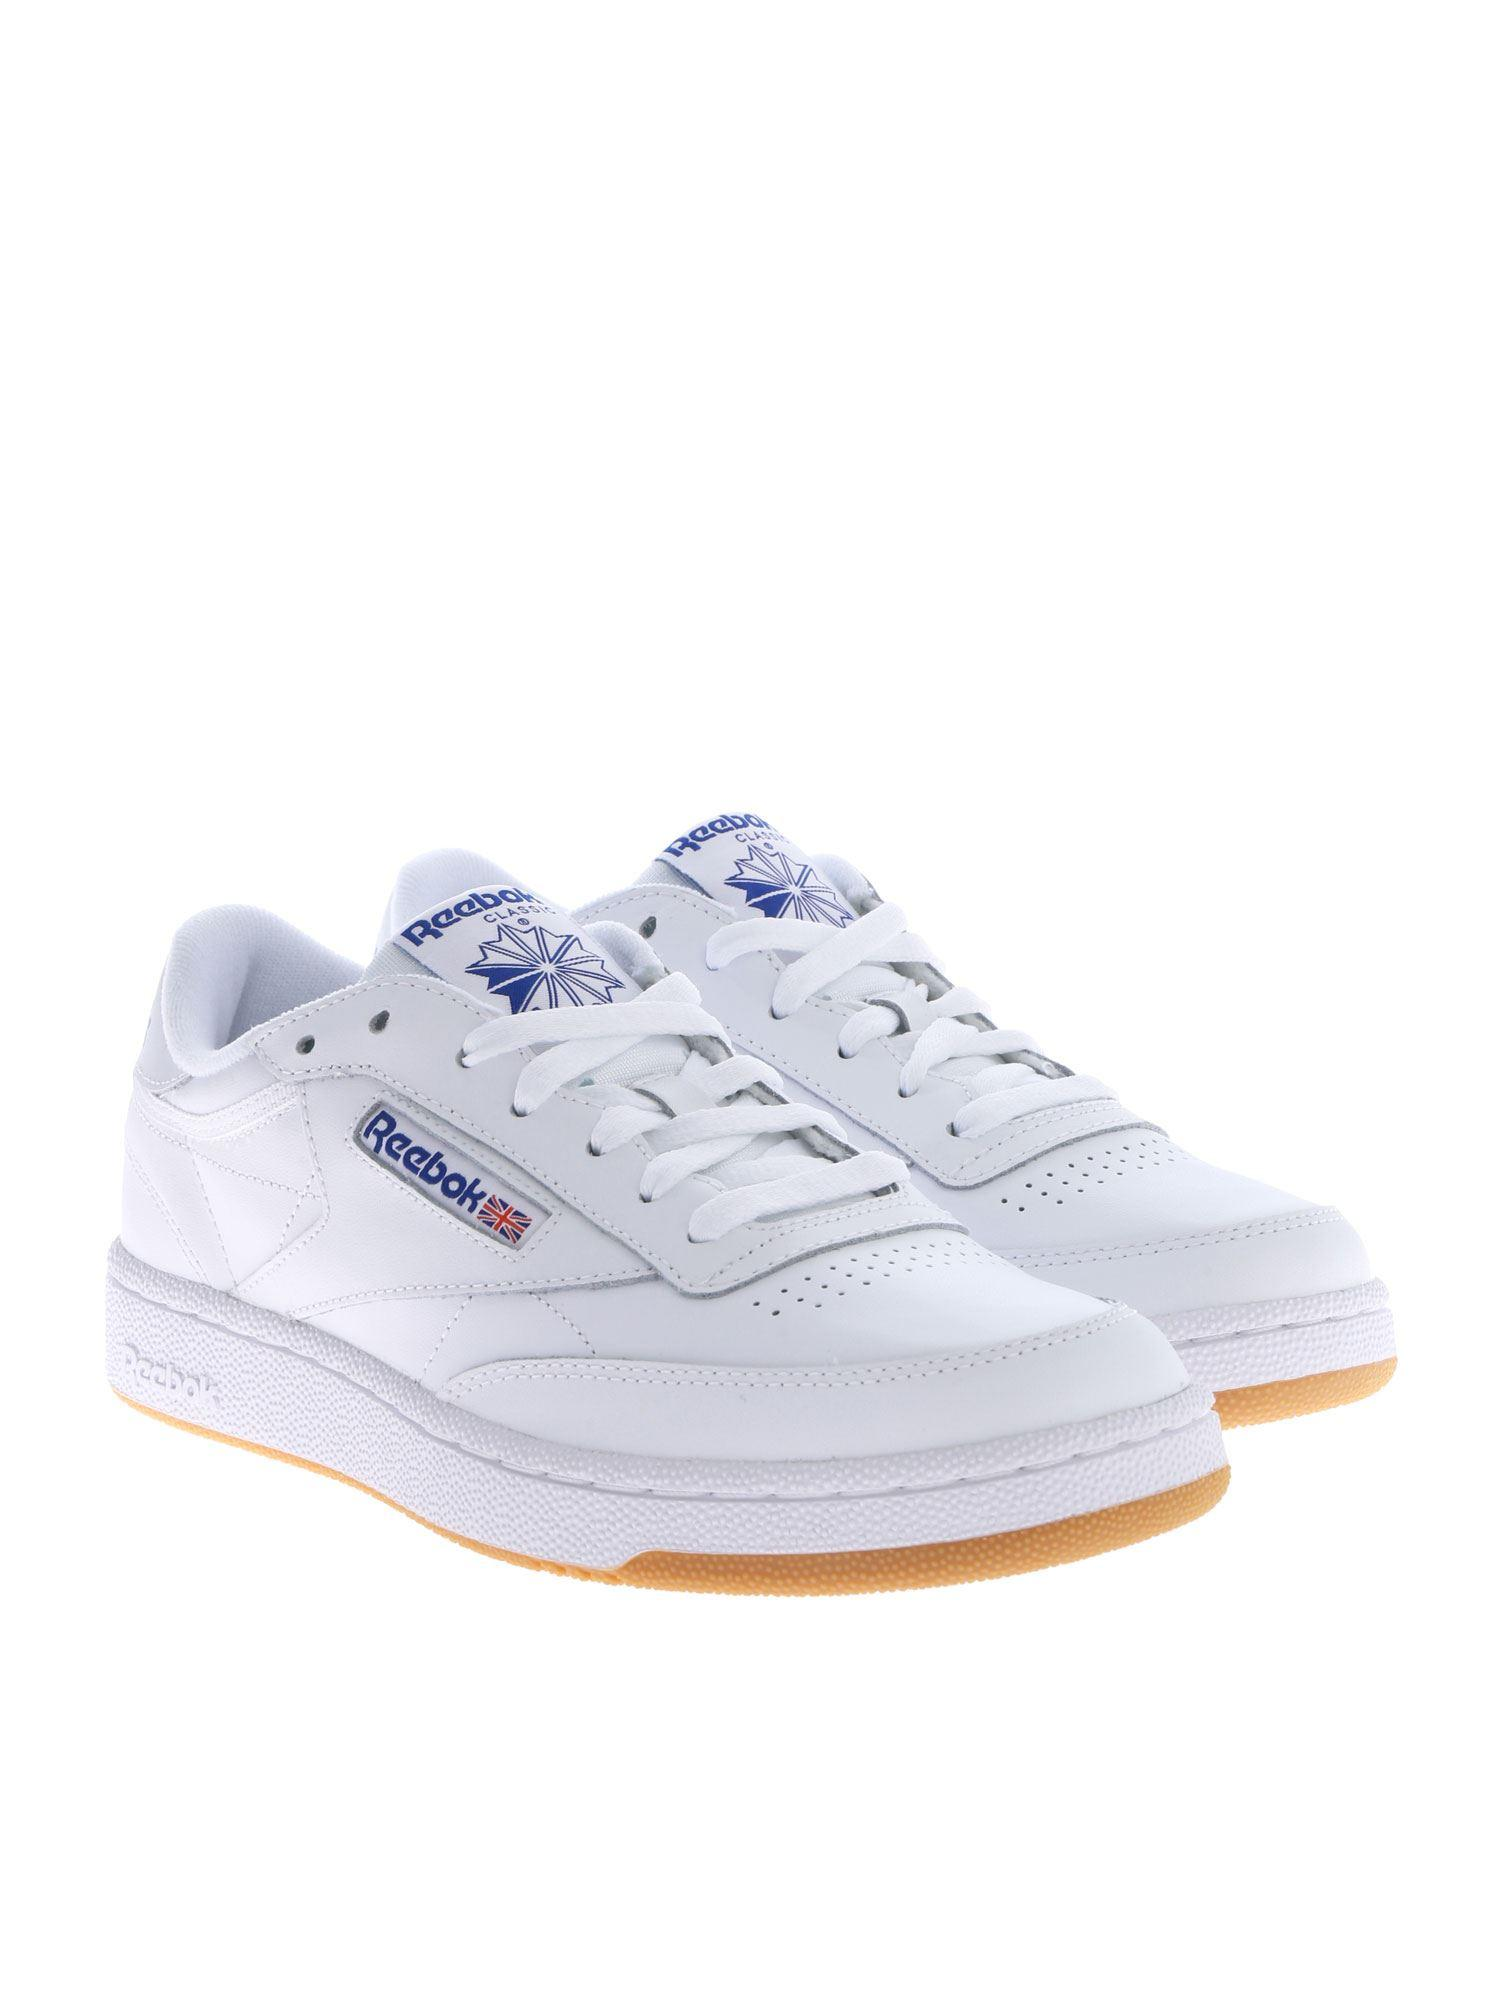 5811d166ffa Lyst - Reebok Club C 85 White Sneakers With Blue Logos in White for Men